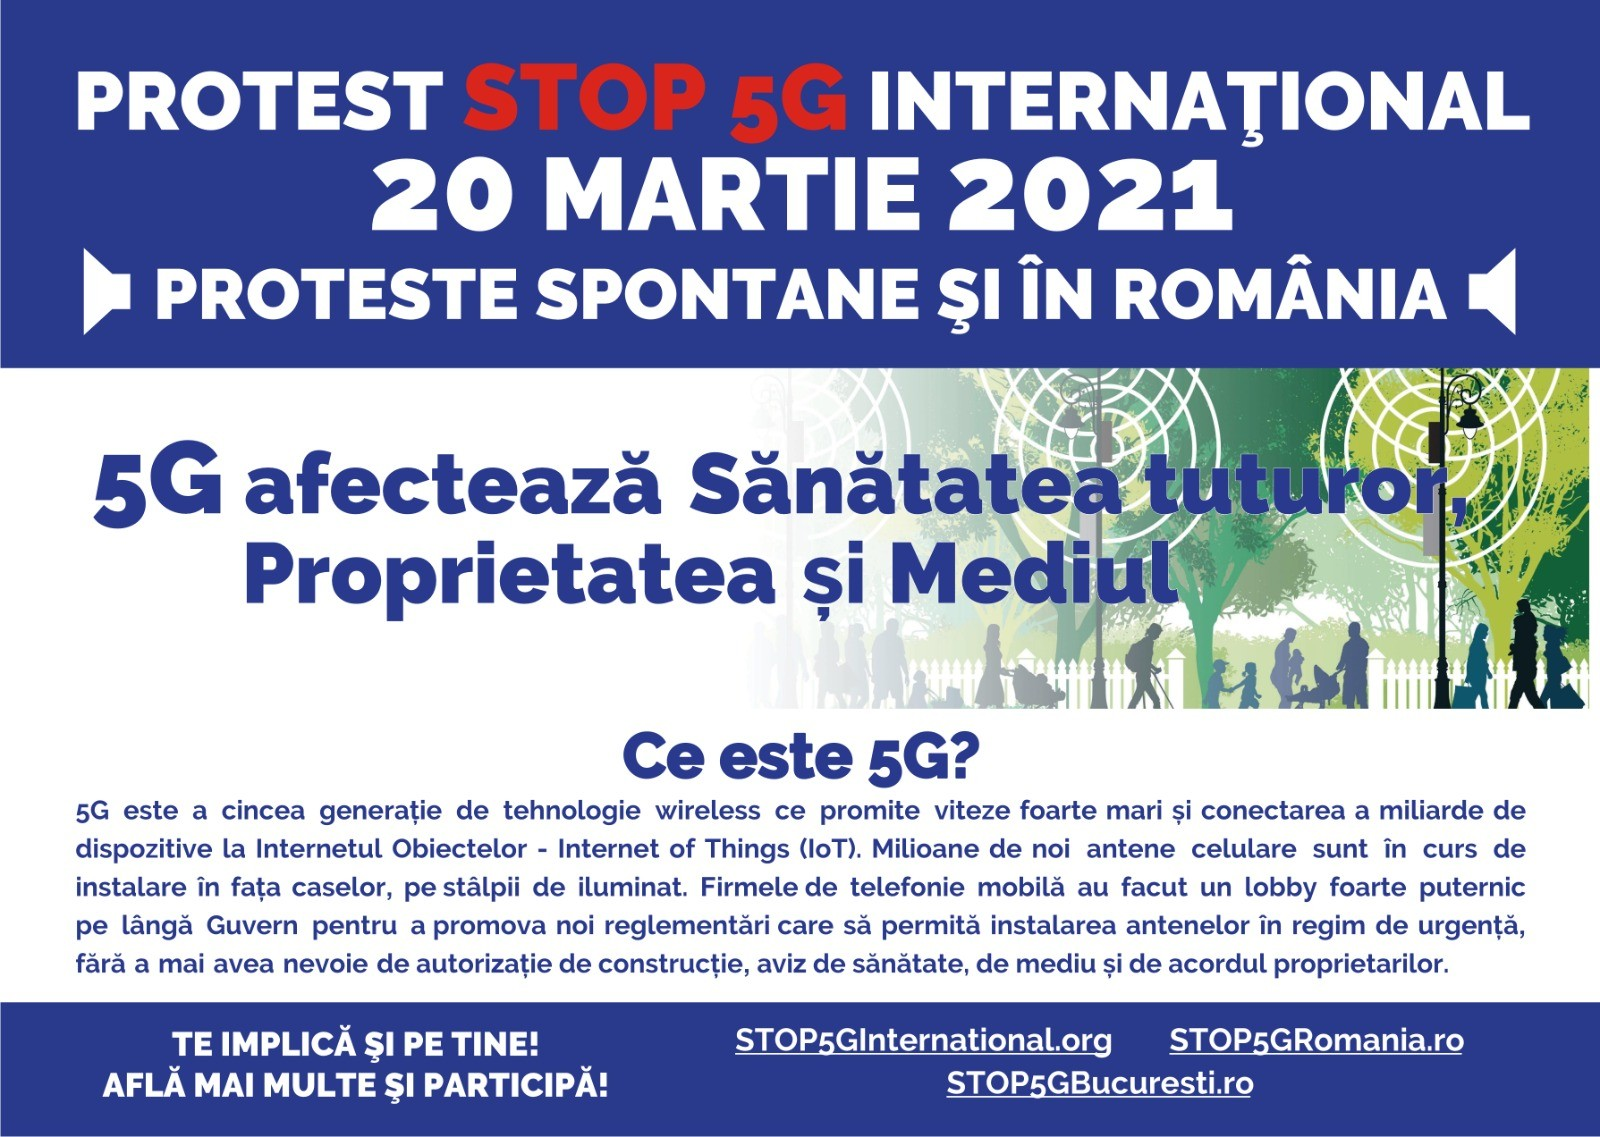 20.03.2021 PROTEST MONDIAL STOP 5G